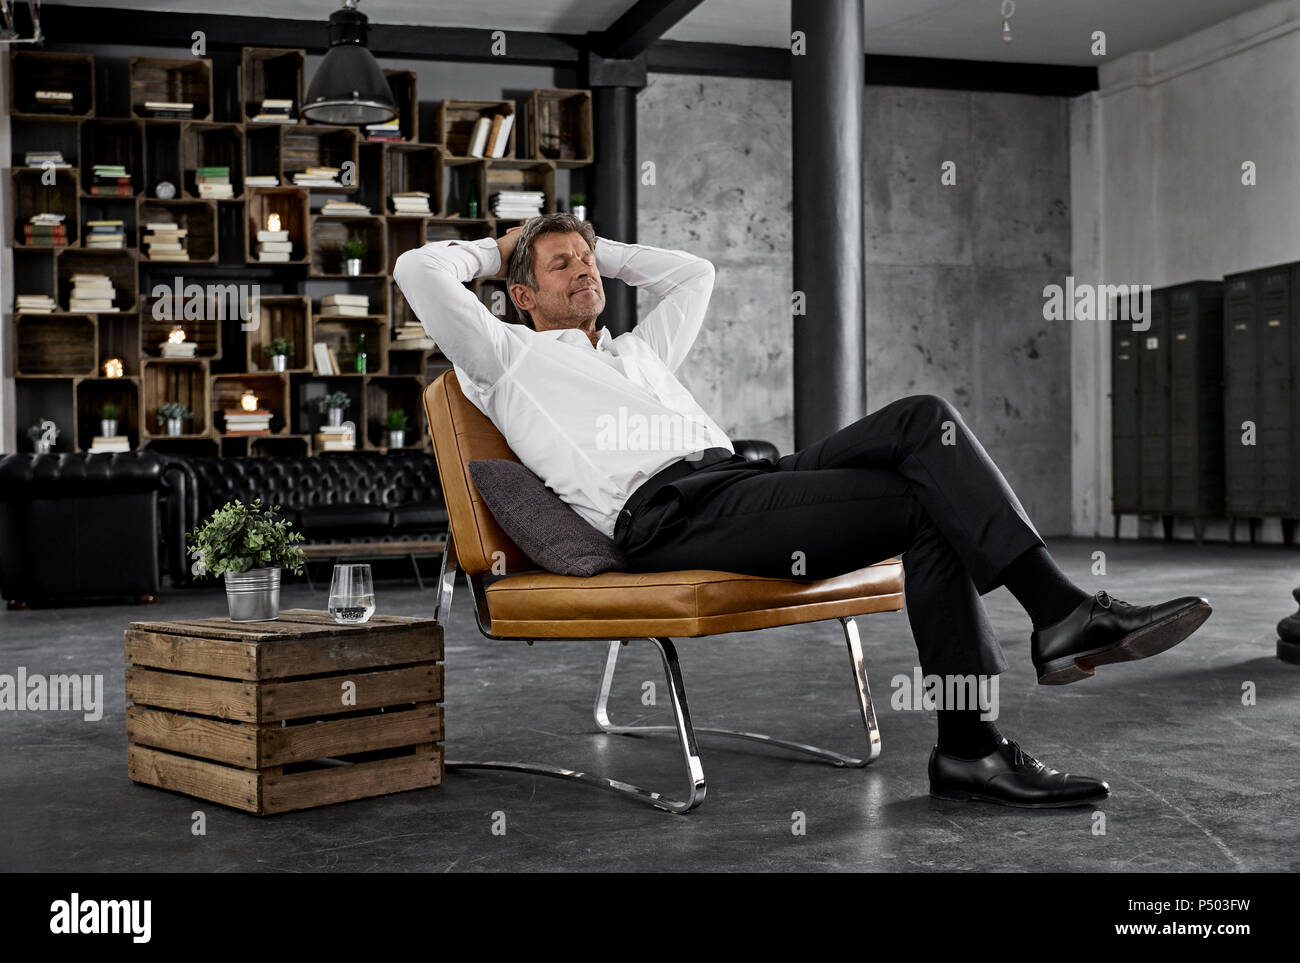 Mature man sitting on chair in loft relaxing - Stock Image